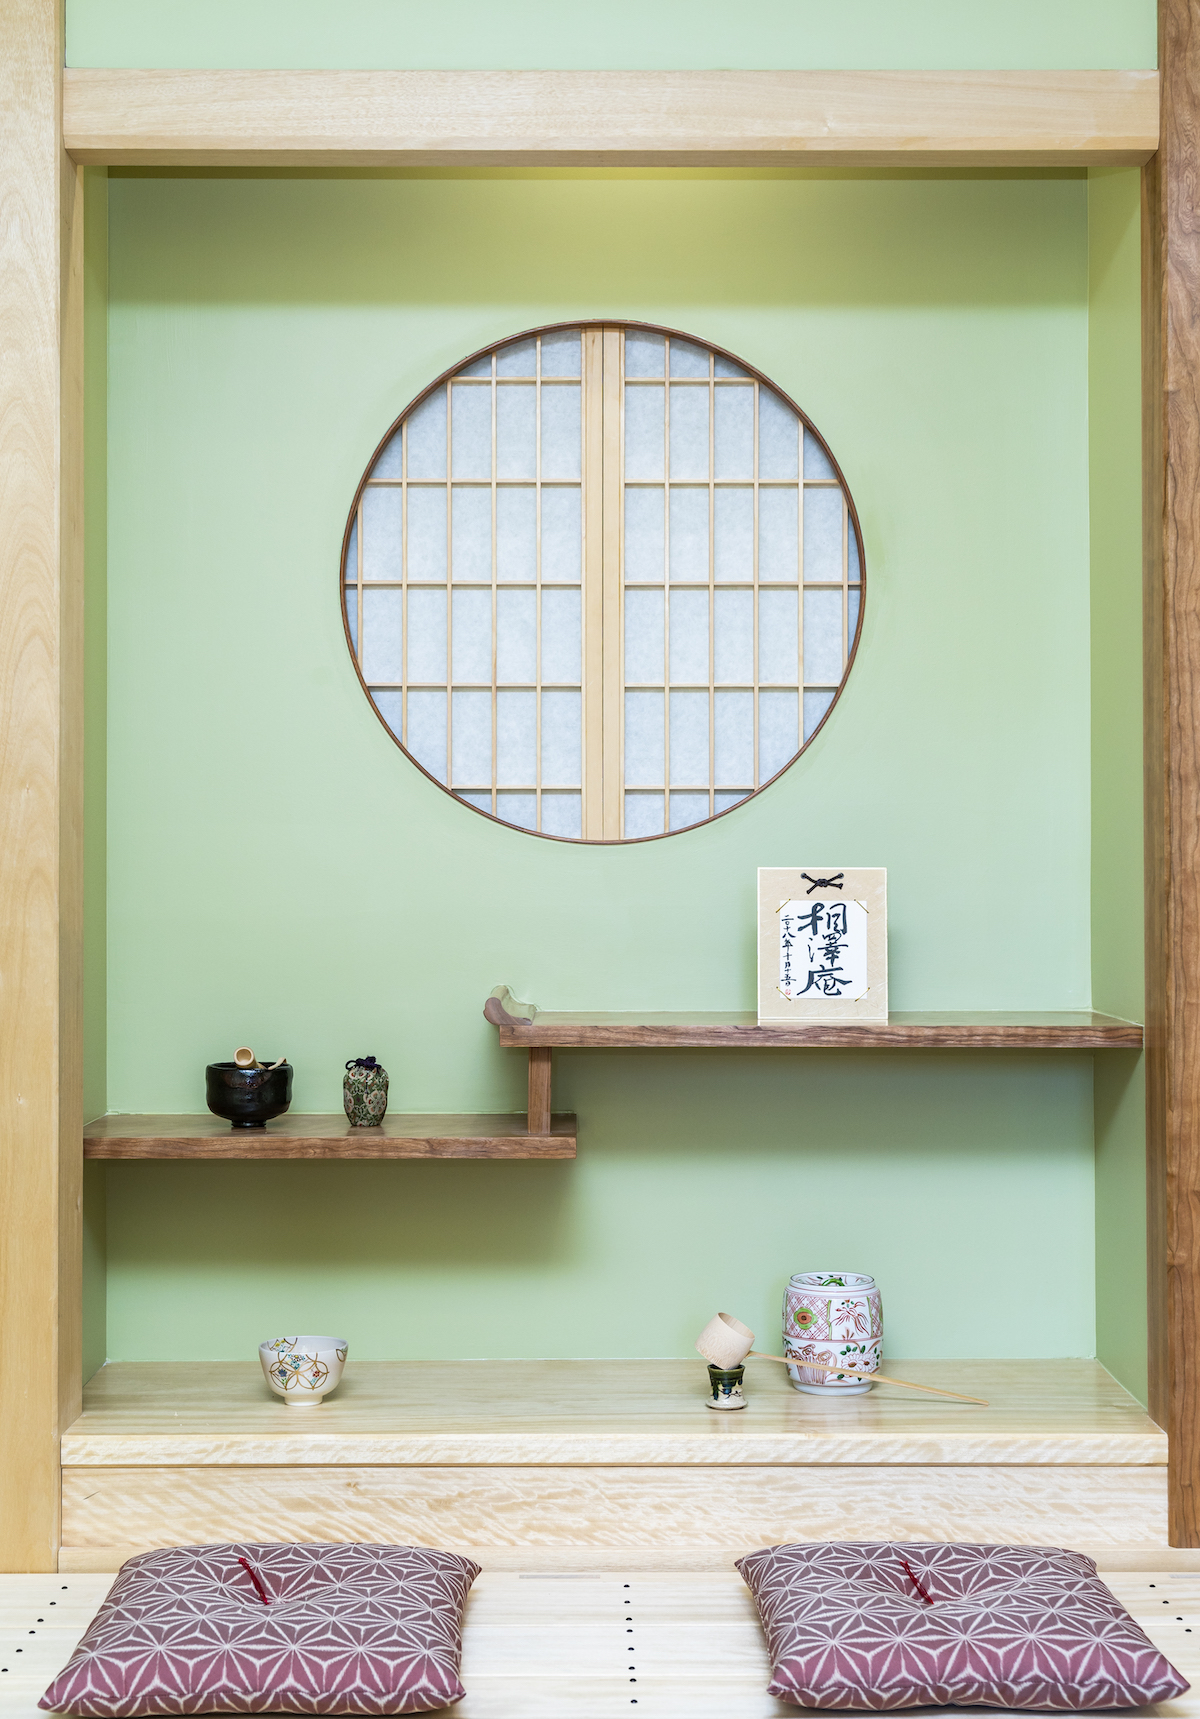 In the  chigai-dana , and floor below are placed some of the Department's prized objects for use in the Tea Ceremony. The light-colored wood is avodire, while the shelves and  toko-bashira  are American Black Cherry. the shōji in the round window are constructed from Japanese Cypress.